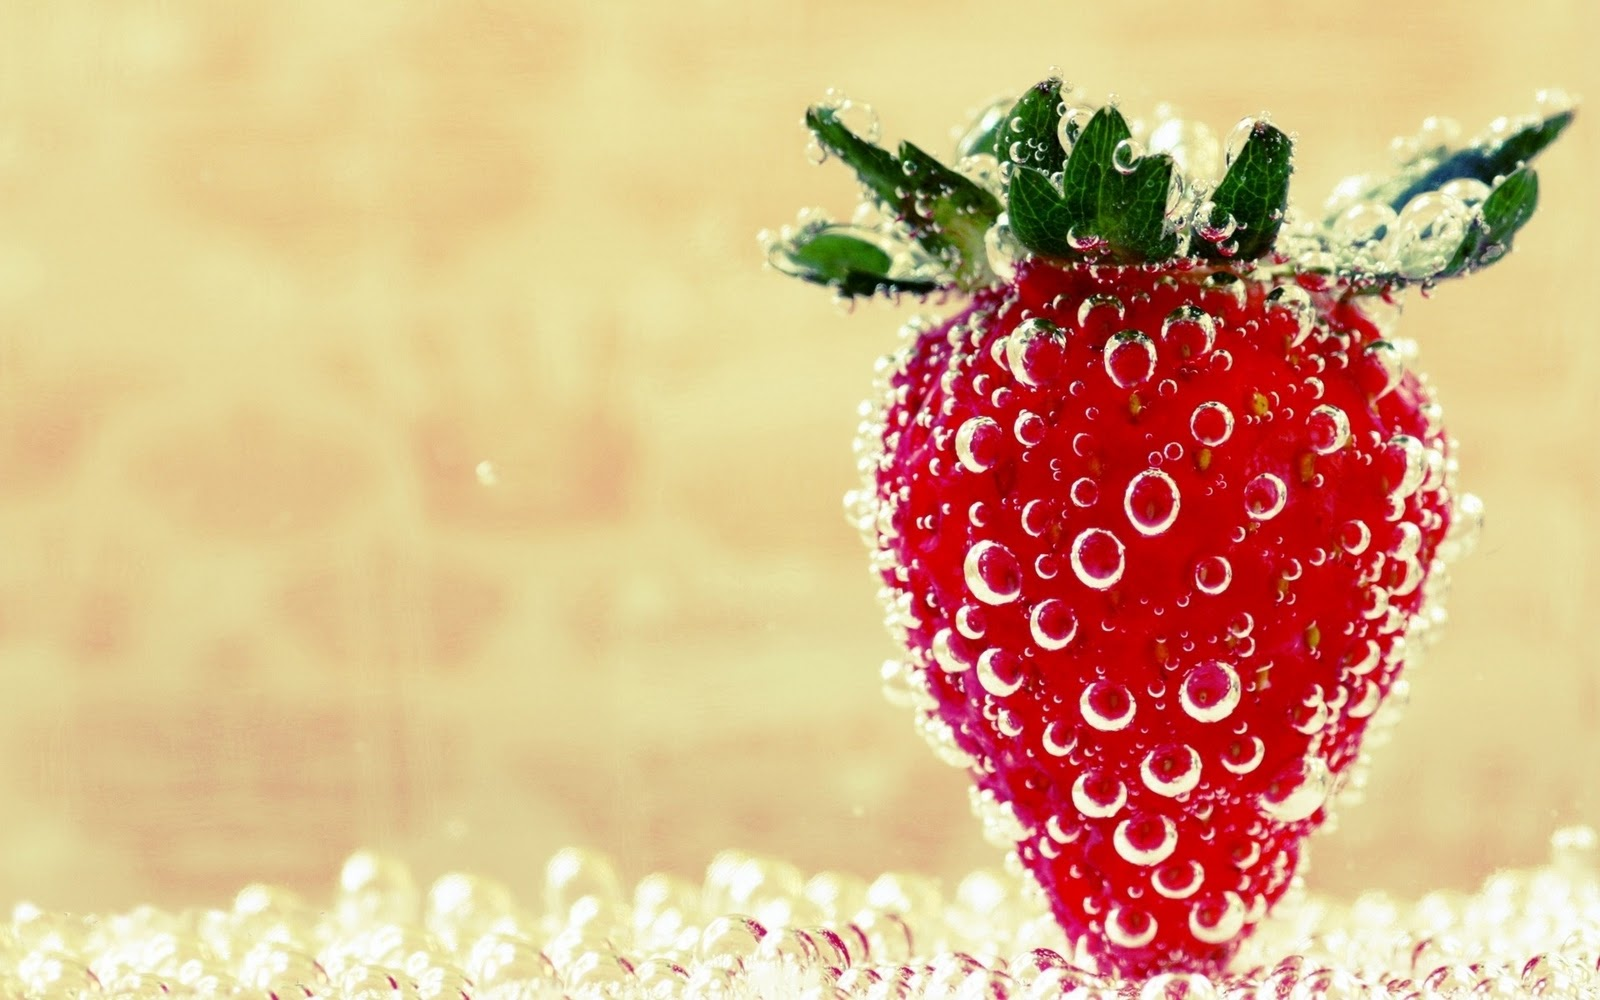 strawberry ice wallpapers strawberry wallpapers for desktop green 1600x1000